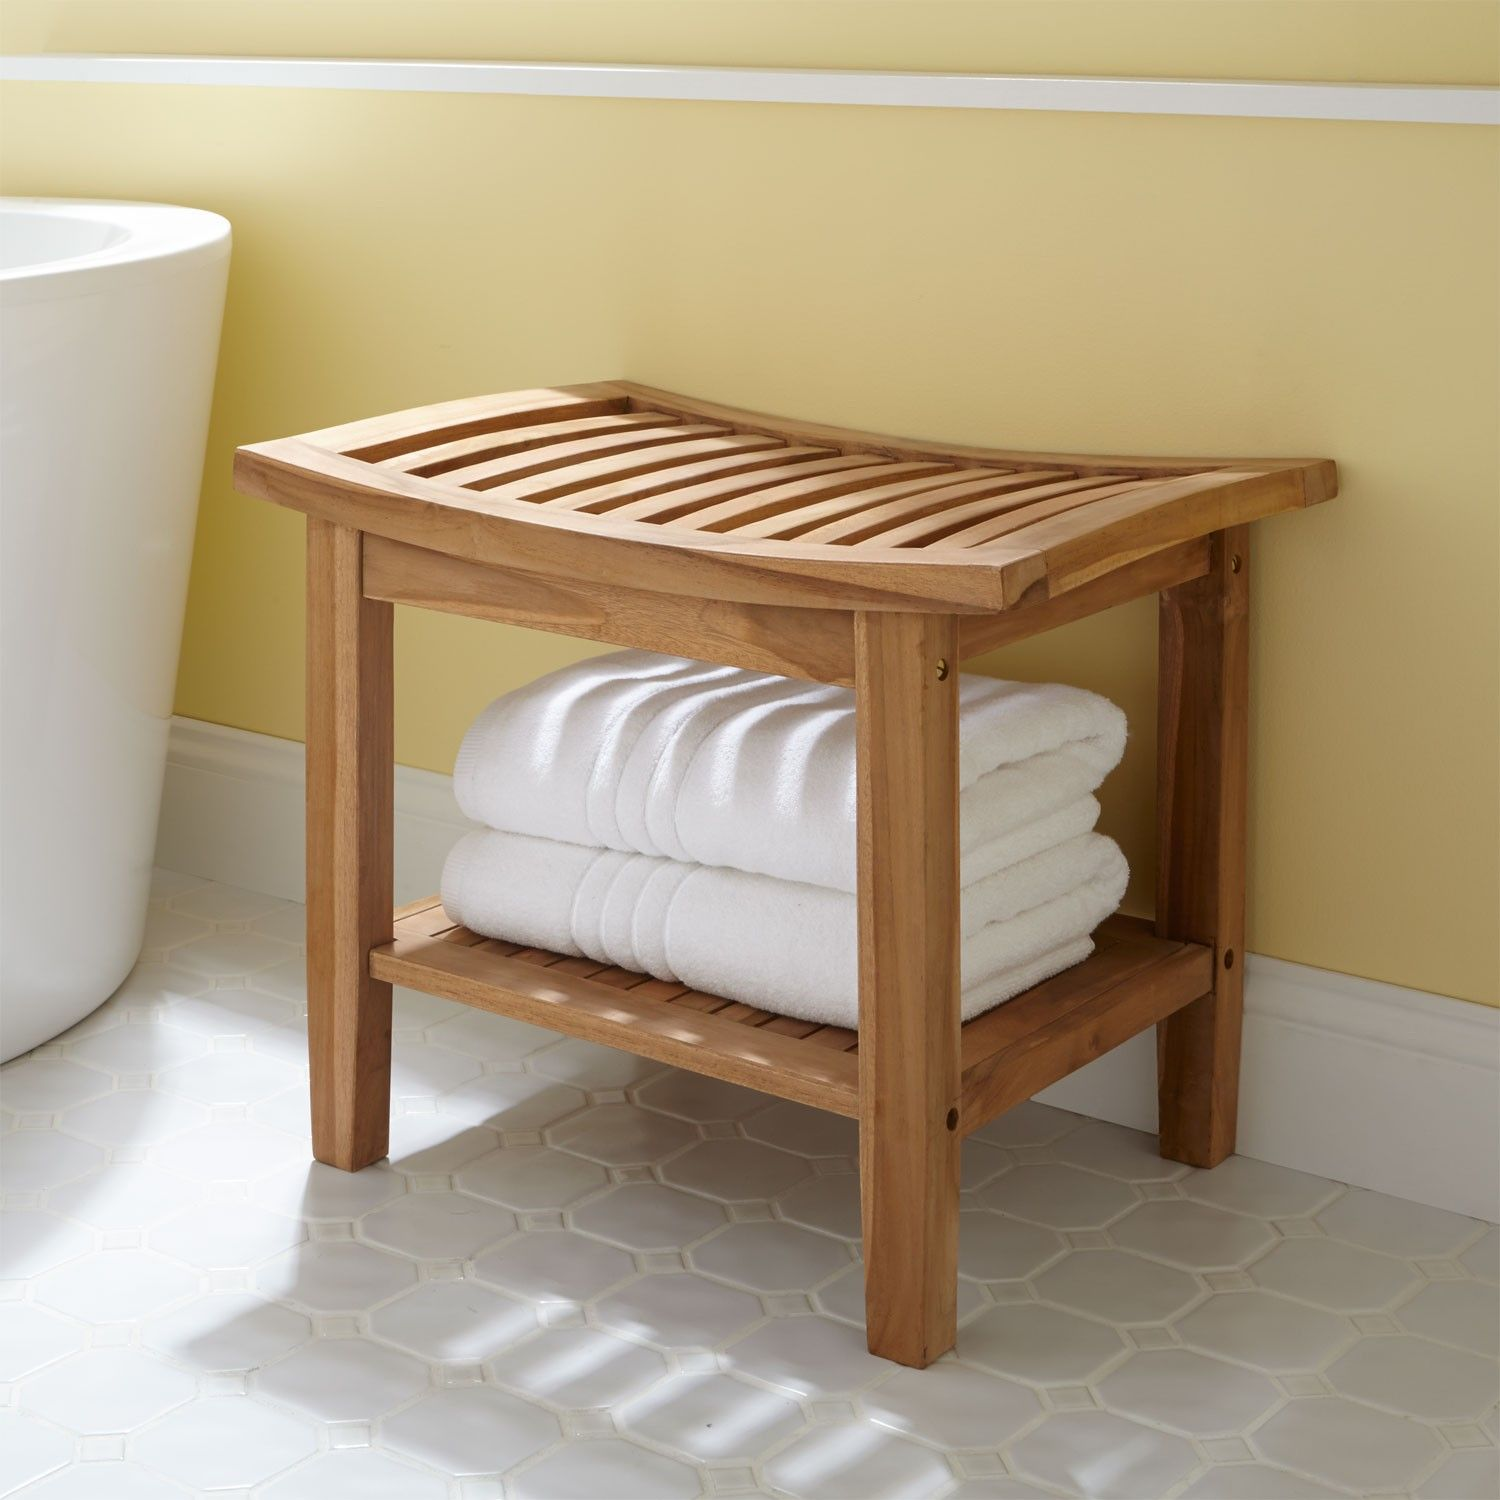 Delicieux Bathroom, Chic Curved Rail Seat Teak Shower Bench With Shelves As Towel  Storage And Cool White Free Standing Porcelain Tub In Half Bathroom Decor  Views: ...